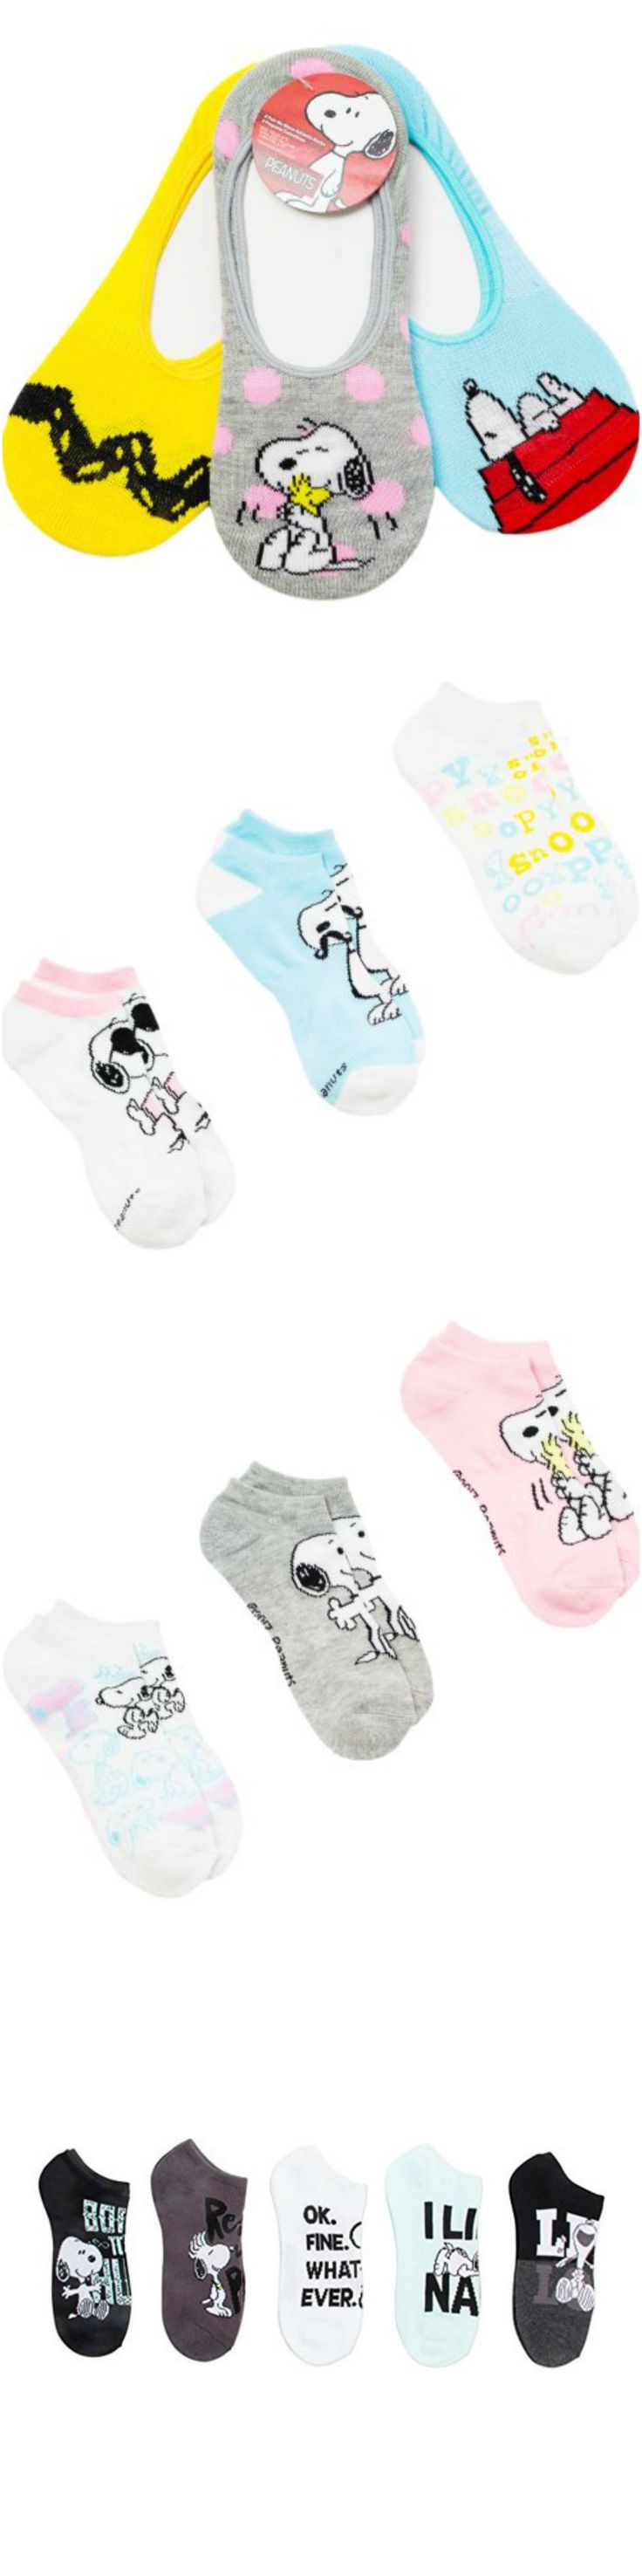 Fall is coming. Keep your toesies roastie toastie with Snoopy socks! Start shopping for a variety of Peanuts socks at CollectPeanuts.com.